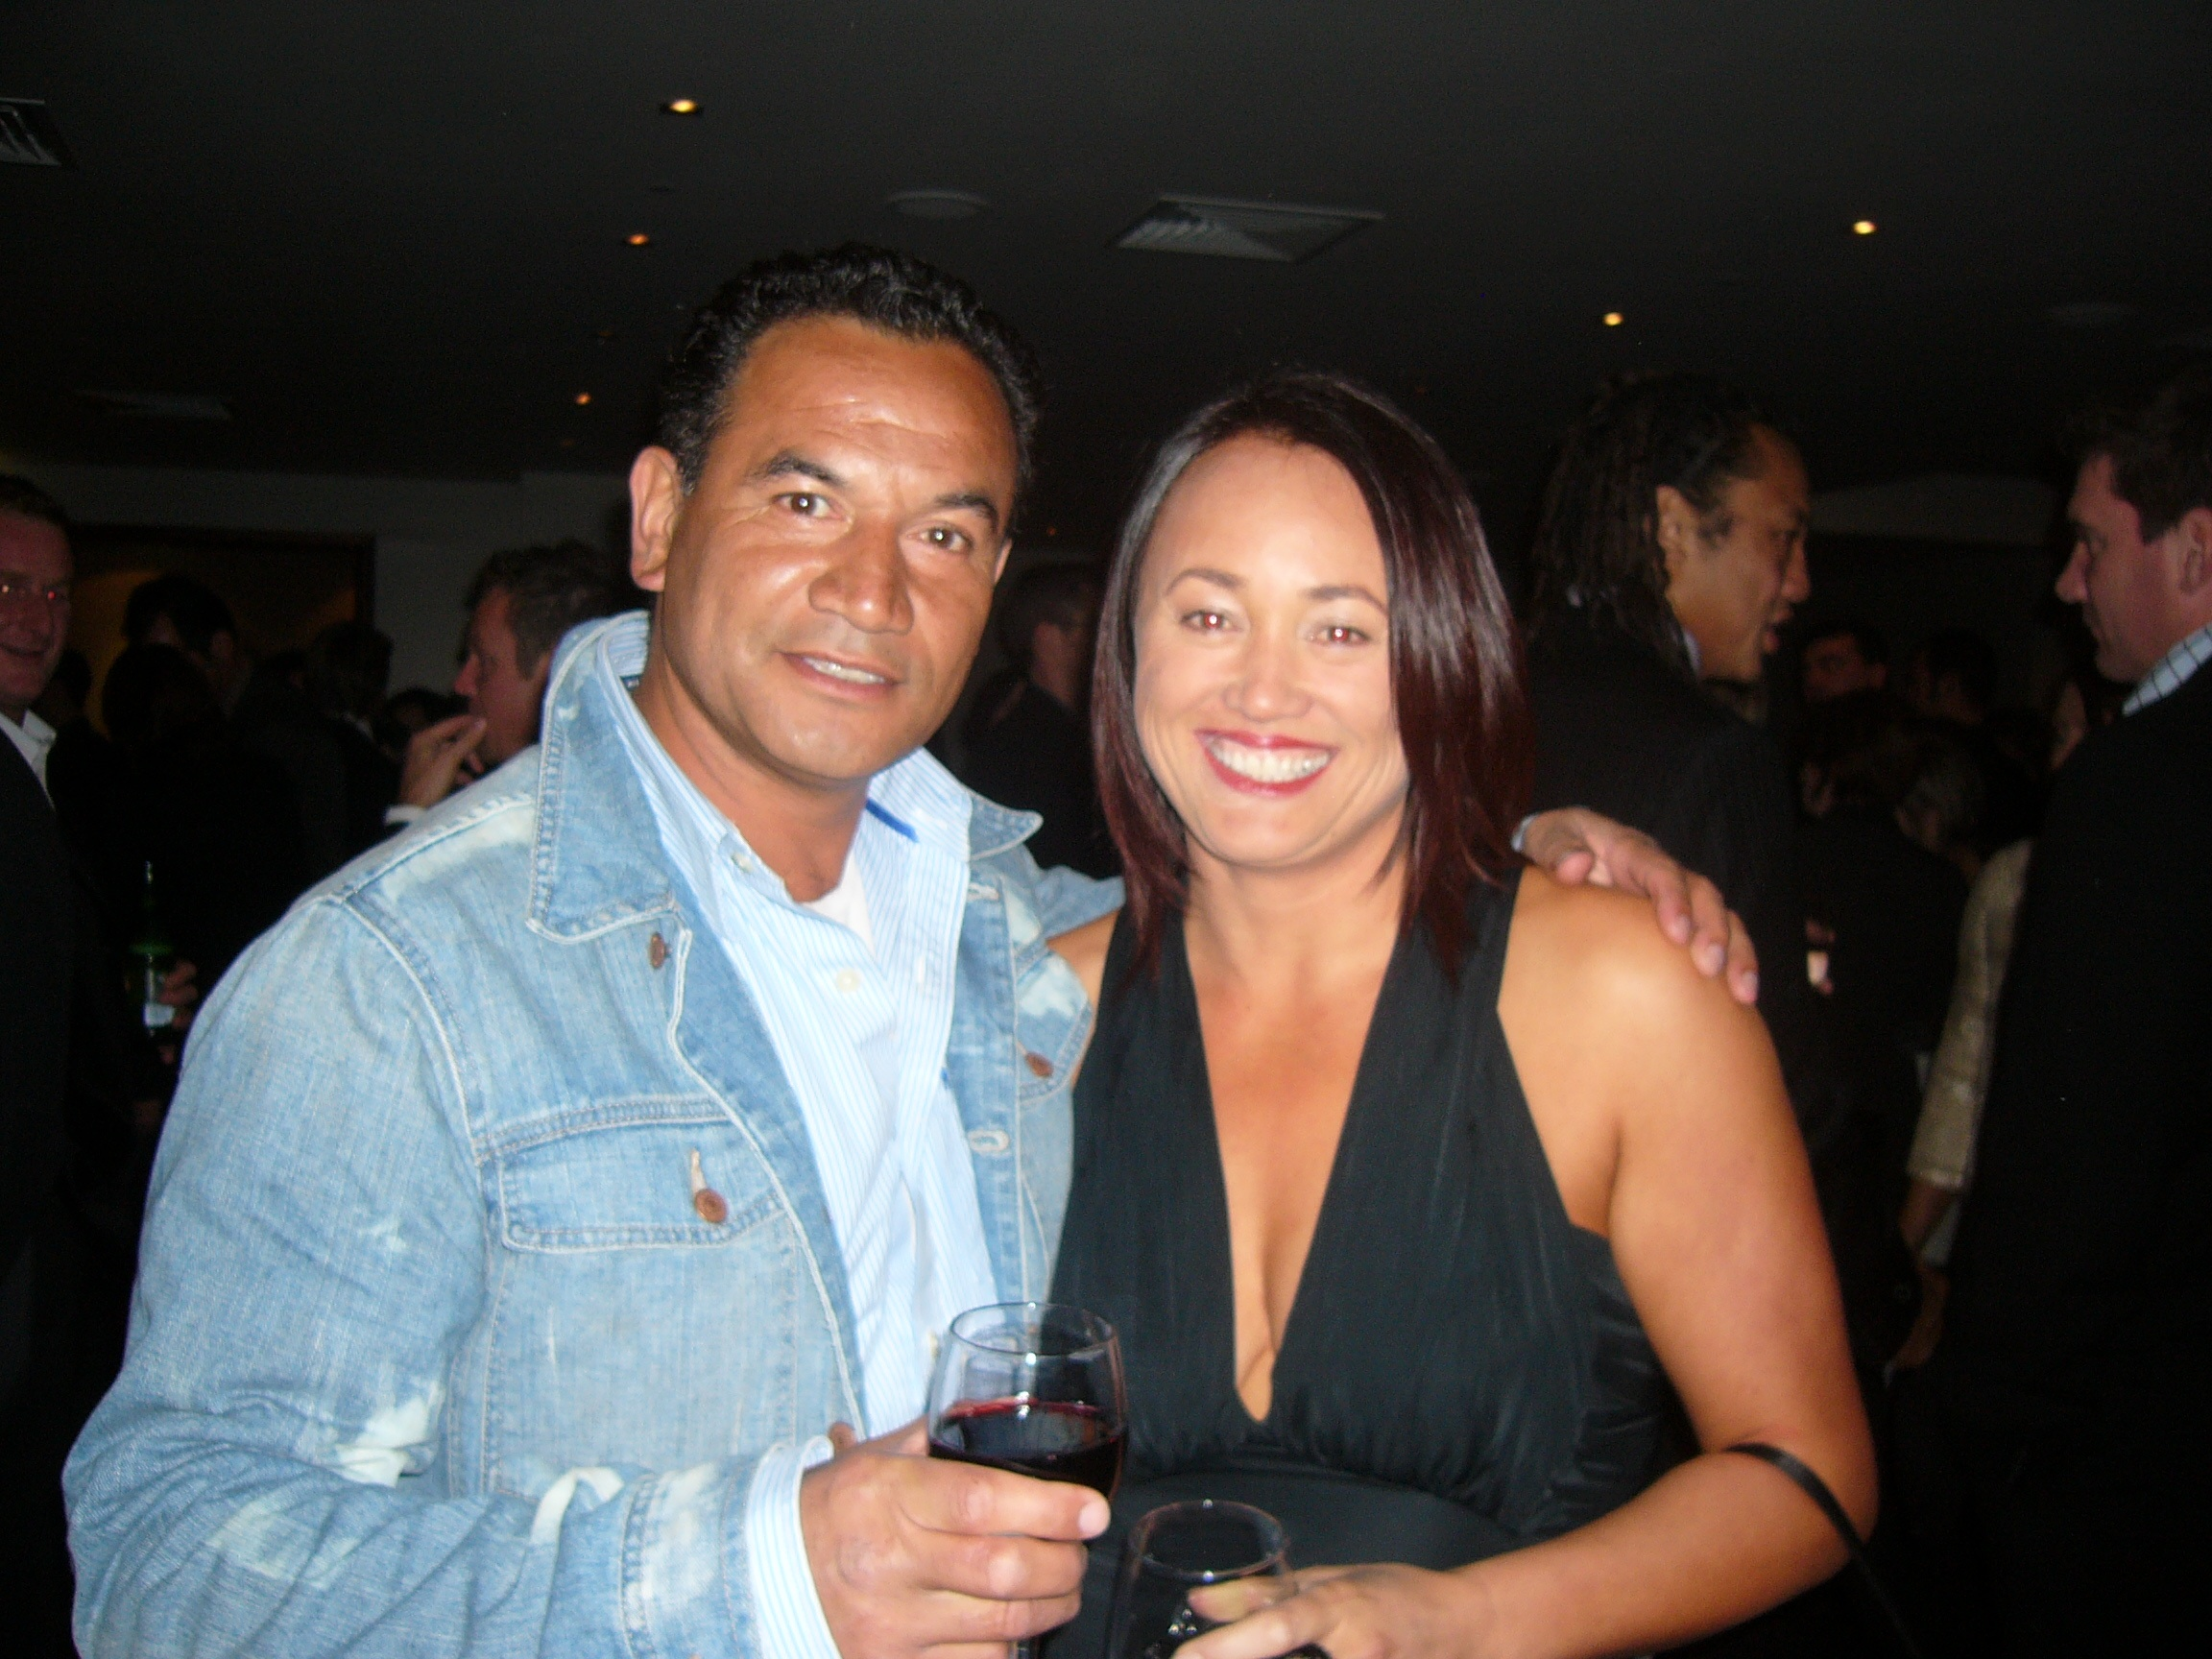 TEMUERA MORRISON - I was fortunate to work with actor, Temuera Morrison in LA at the Star Wars 30 year conference. We had a coaching meeting in Rotorua and 2 days later I was on a plane to LA to assist with his business work. A great experience and person.